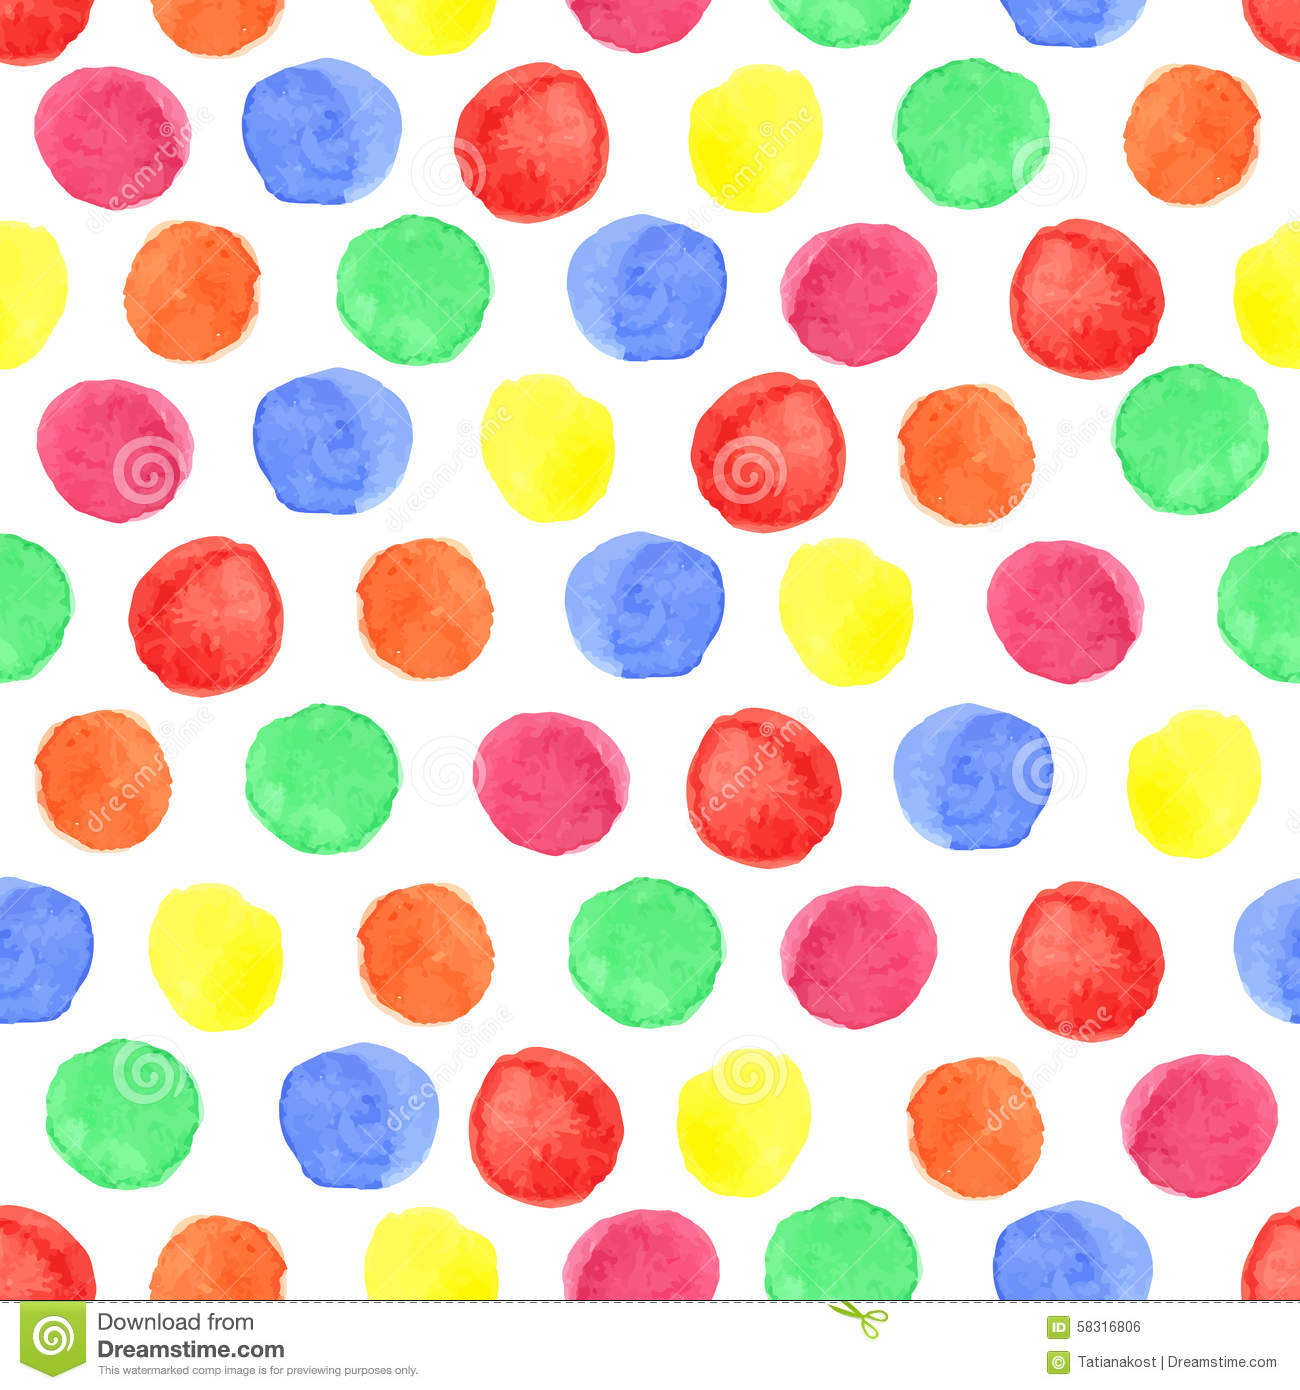 colorful polka dots backgrounds wwwpixsharkcom